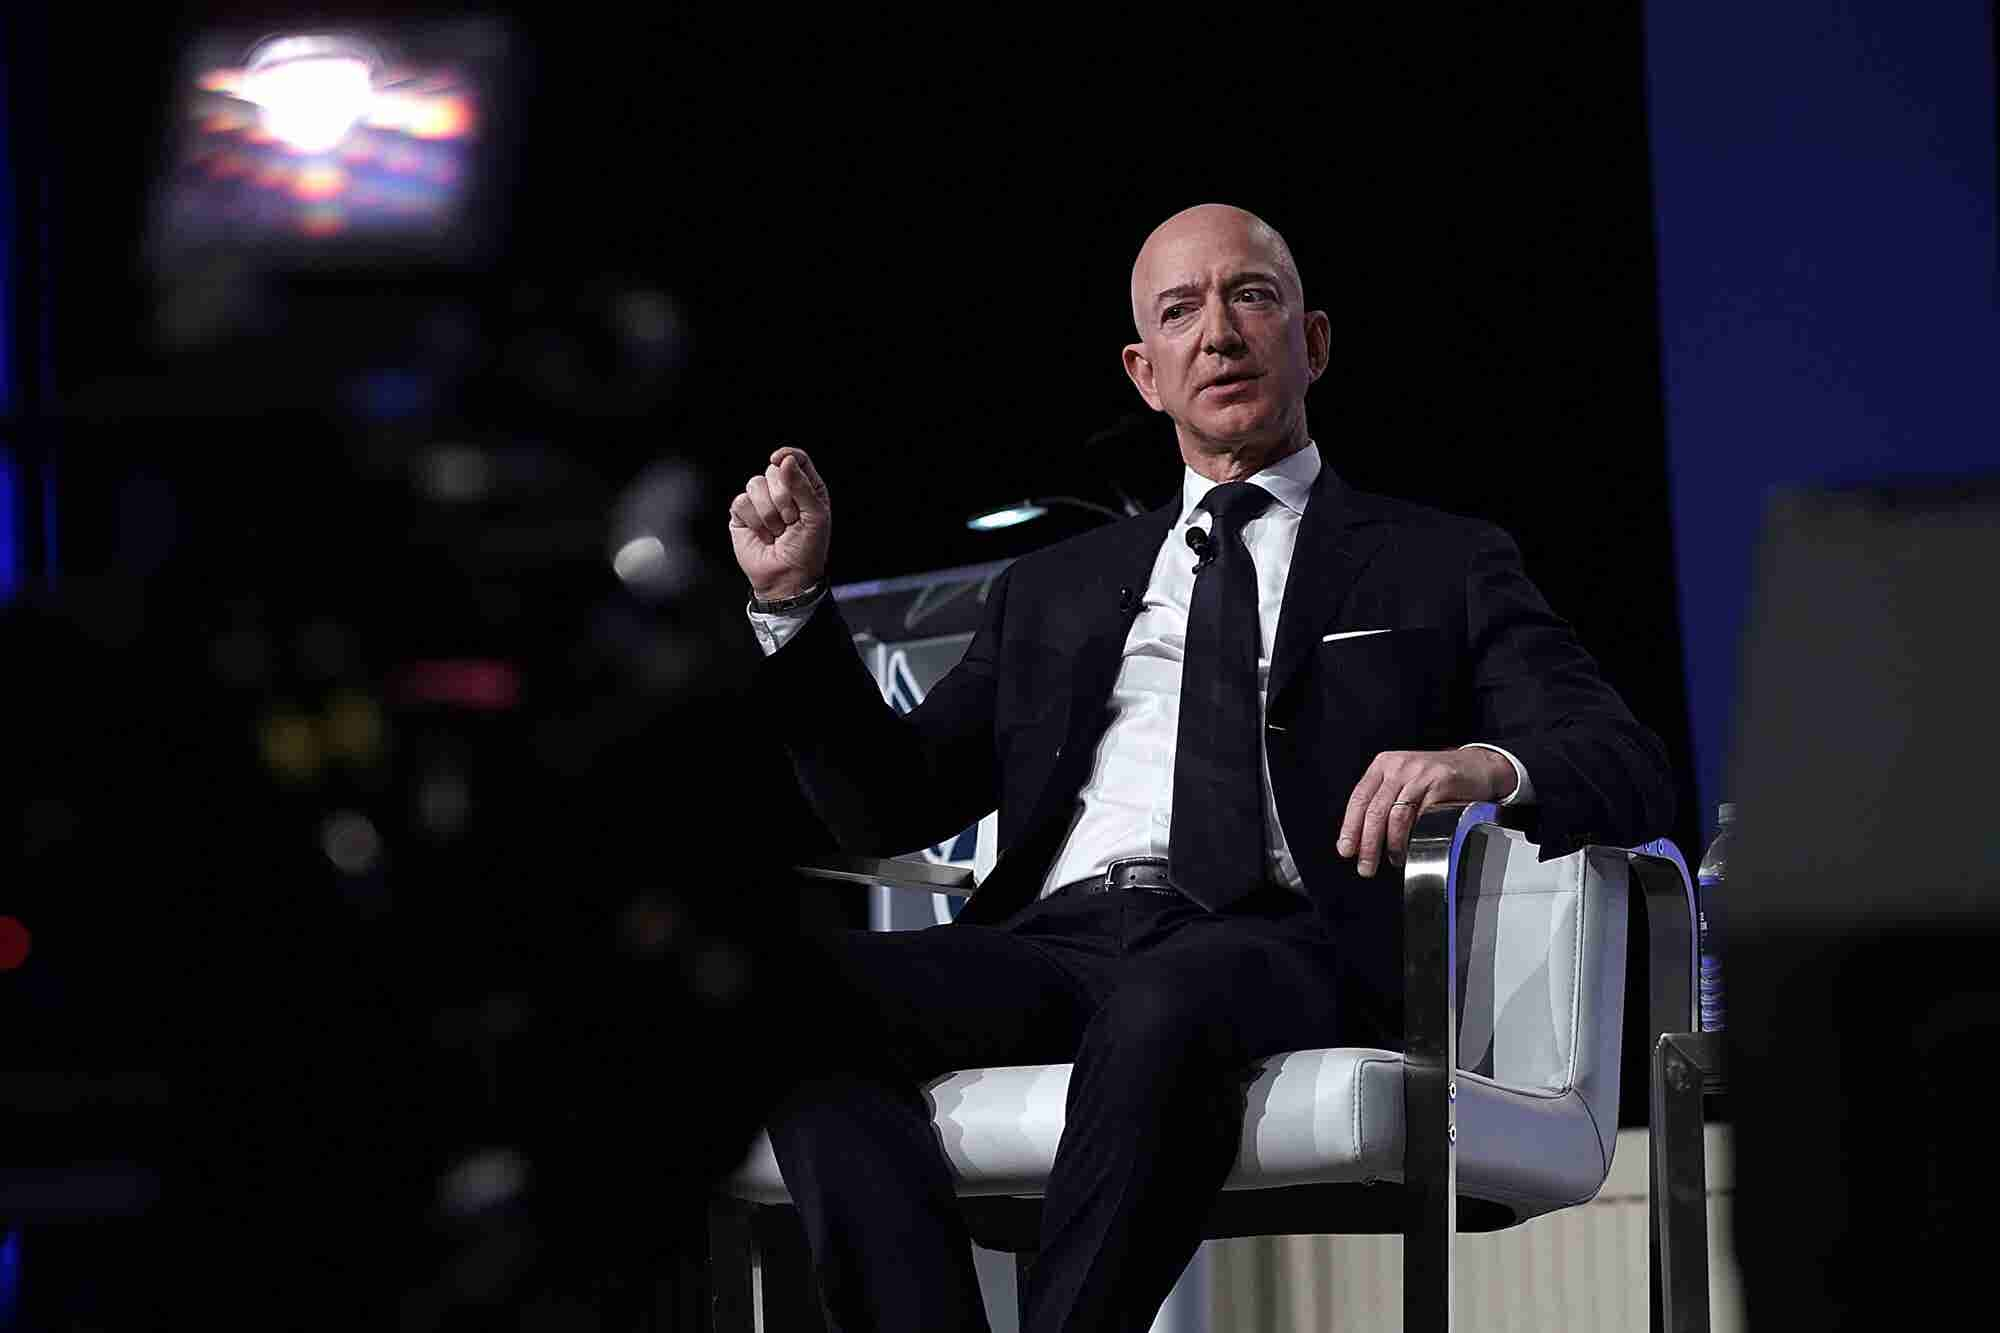 That Time Jeff Bezos Was the Stupidest Person in the Room